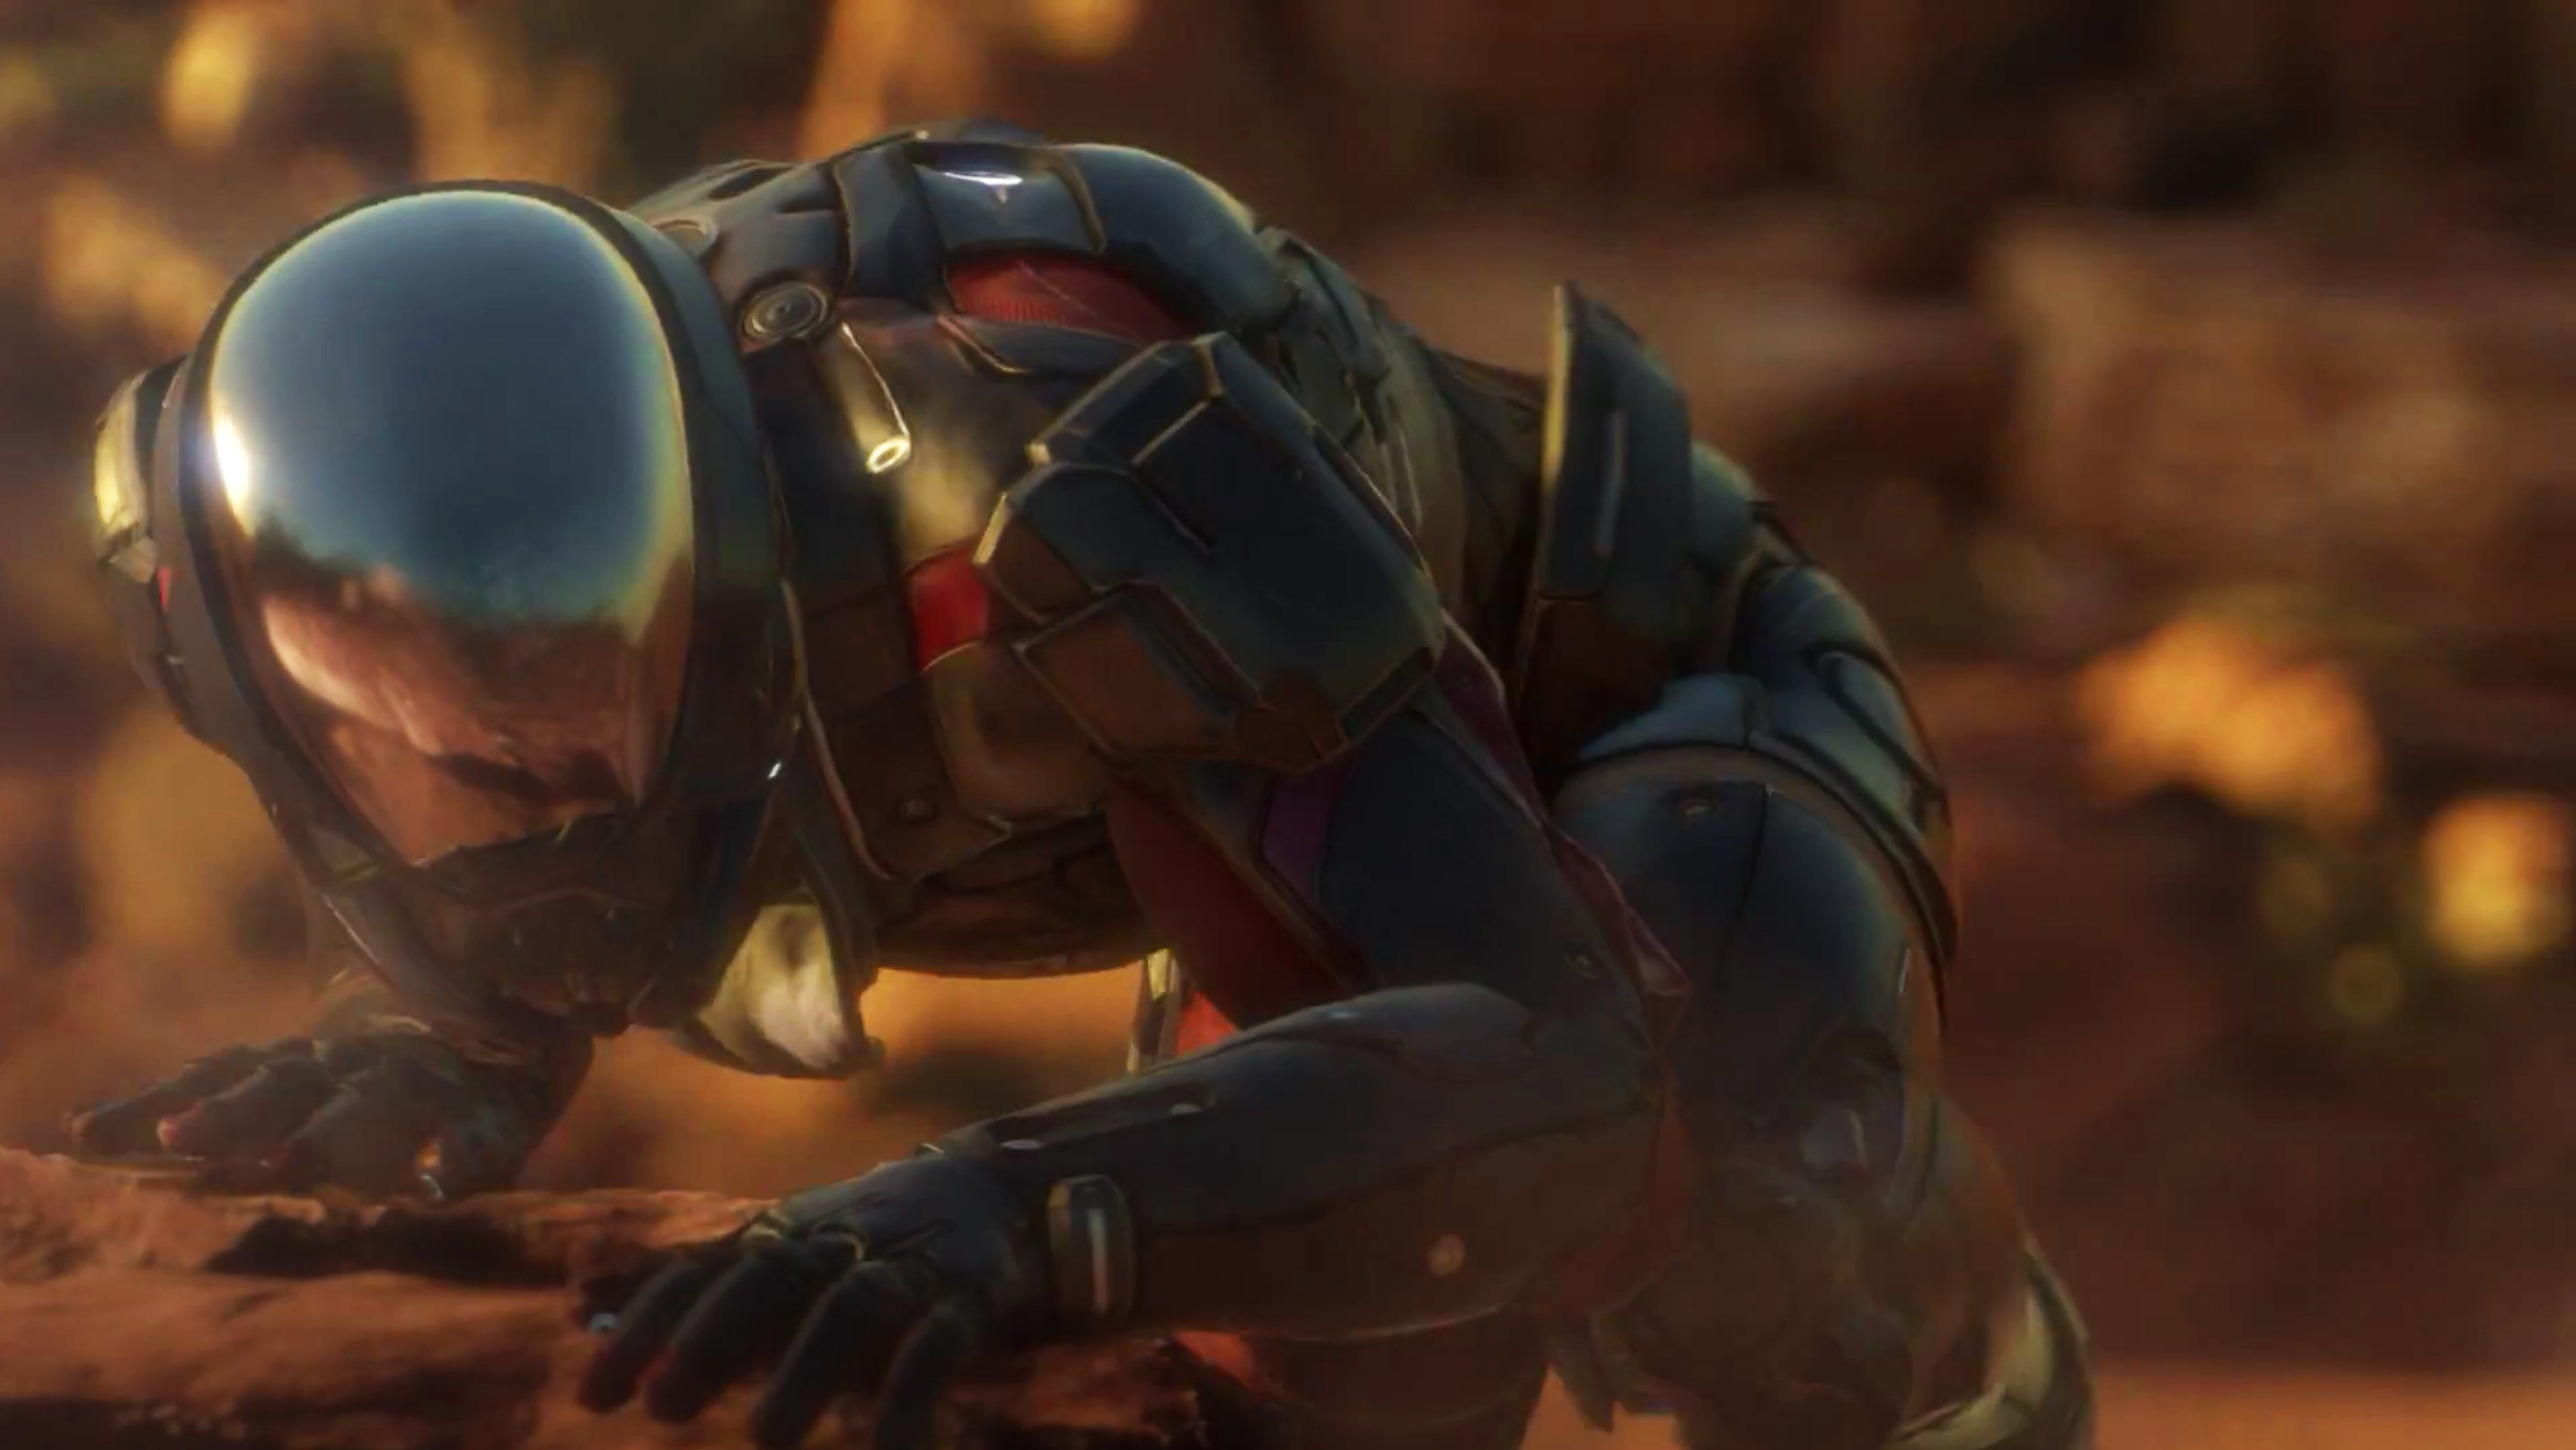 Mass Effect: Andromeda Delayed, But Confirmed For E3 has this timeline image revealed the plot of mass effect 4 andromeda mass effect andro 491839